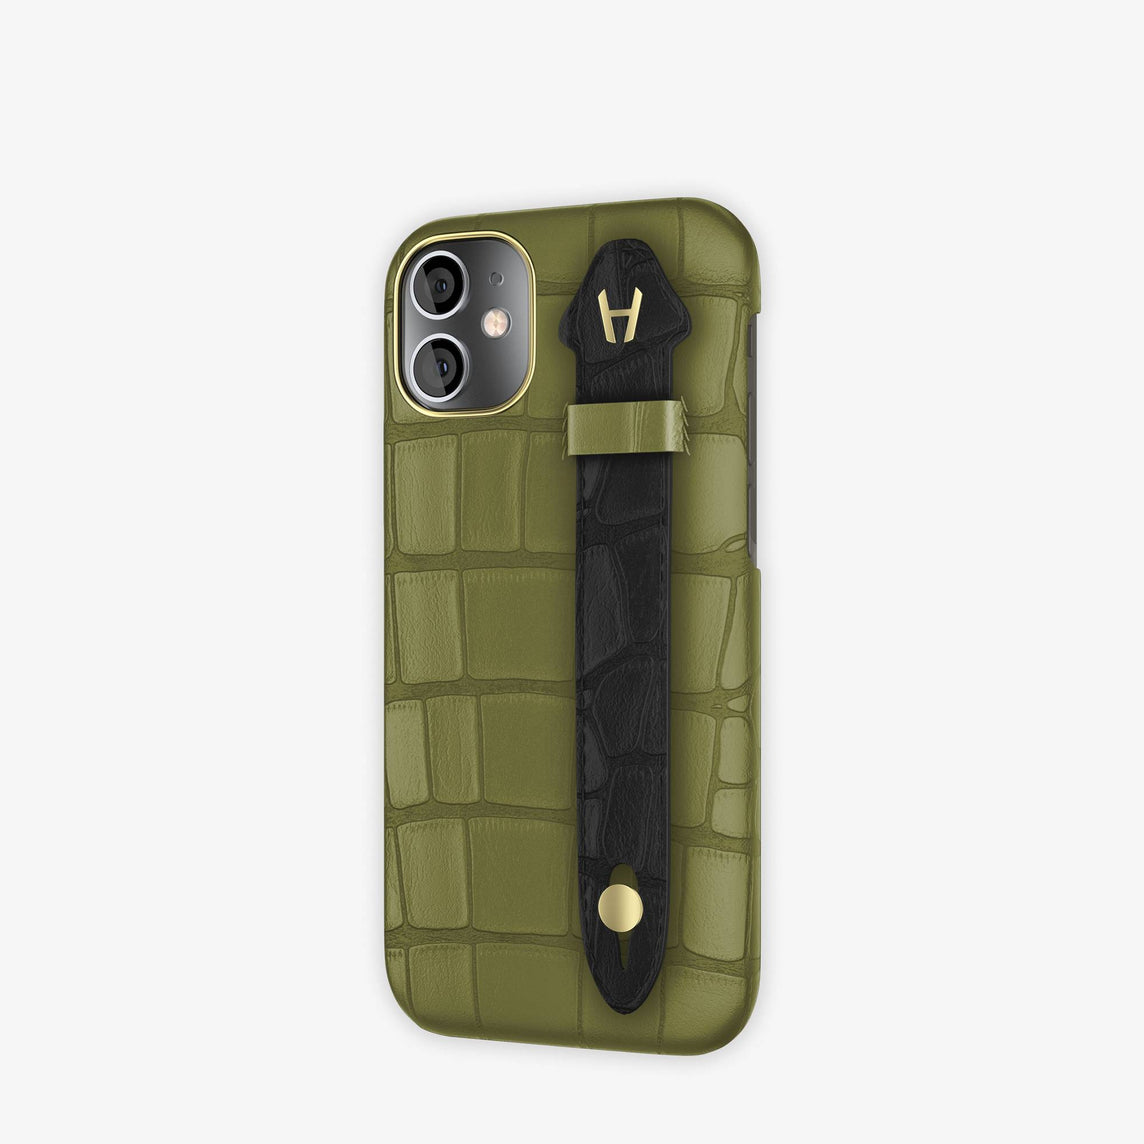 Alligator Side Finger Case iPhone 12 Mini | Khaki/Black -Yellow Gold